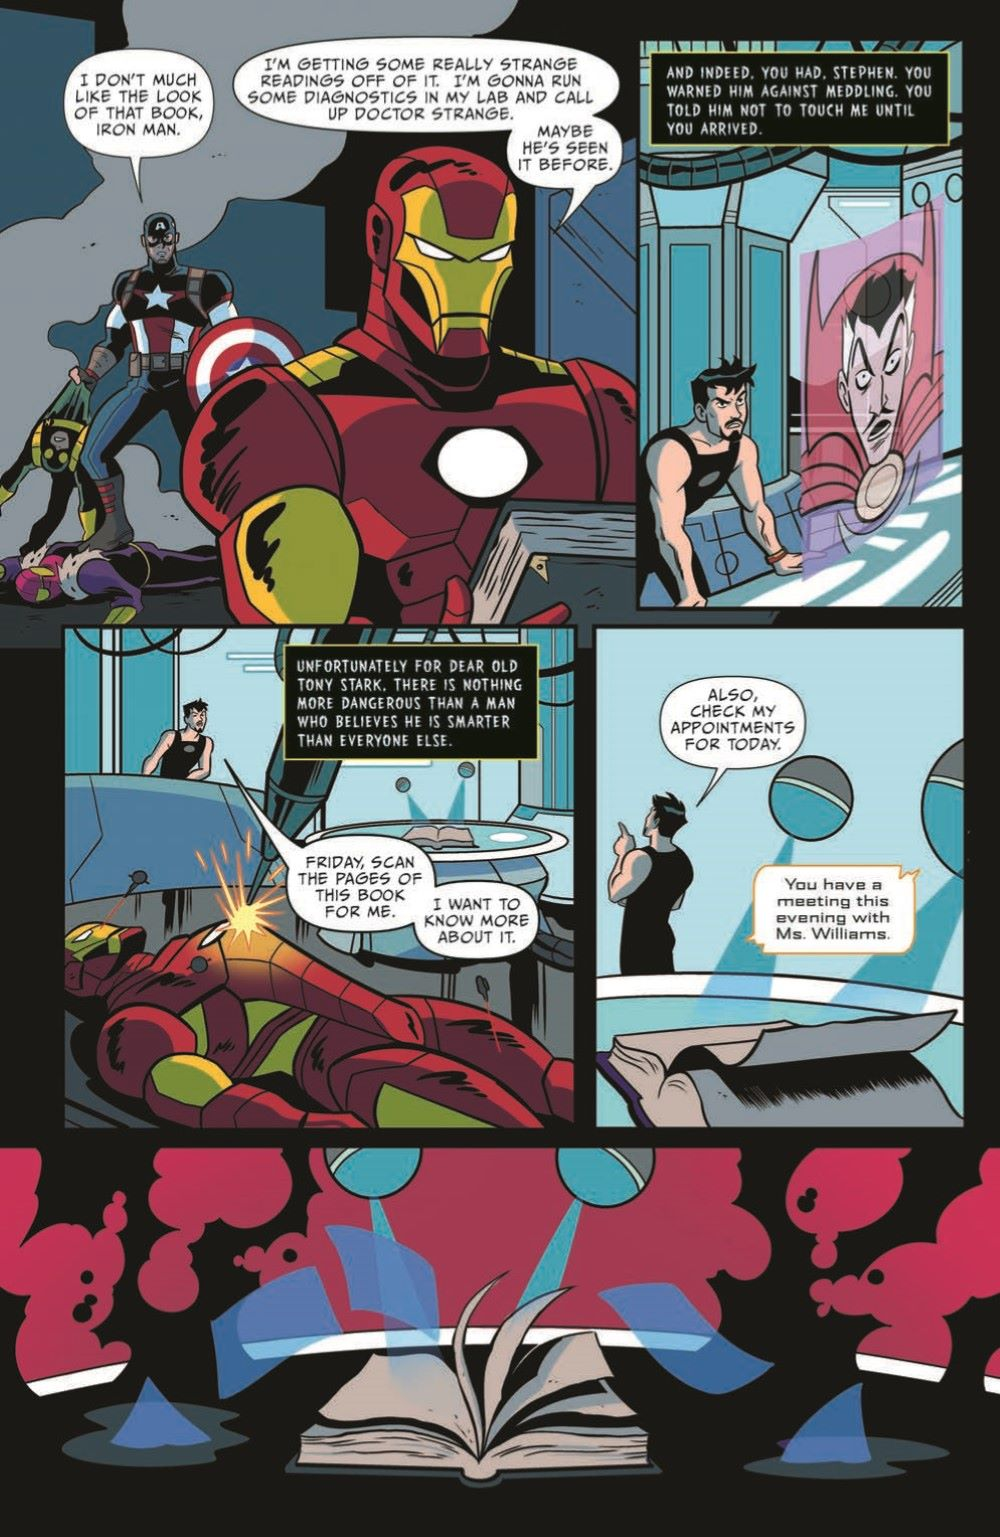 Marvel_Chillers_01_pr-7 ComicList Previews: MARVEL ACTION CHILLERS #1